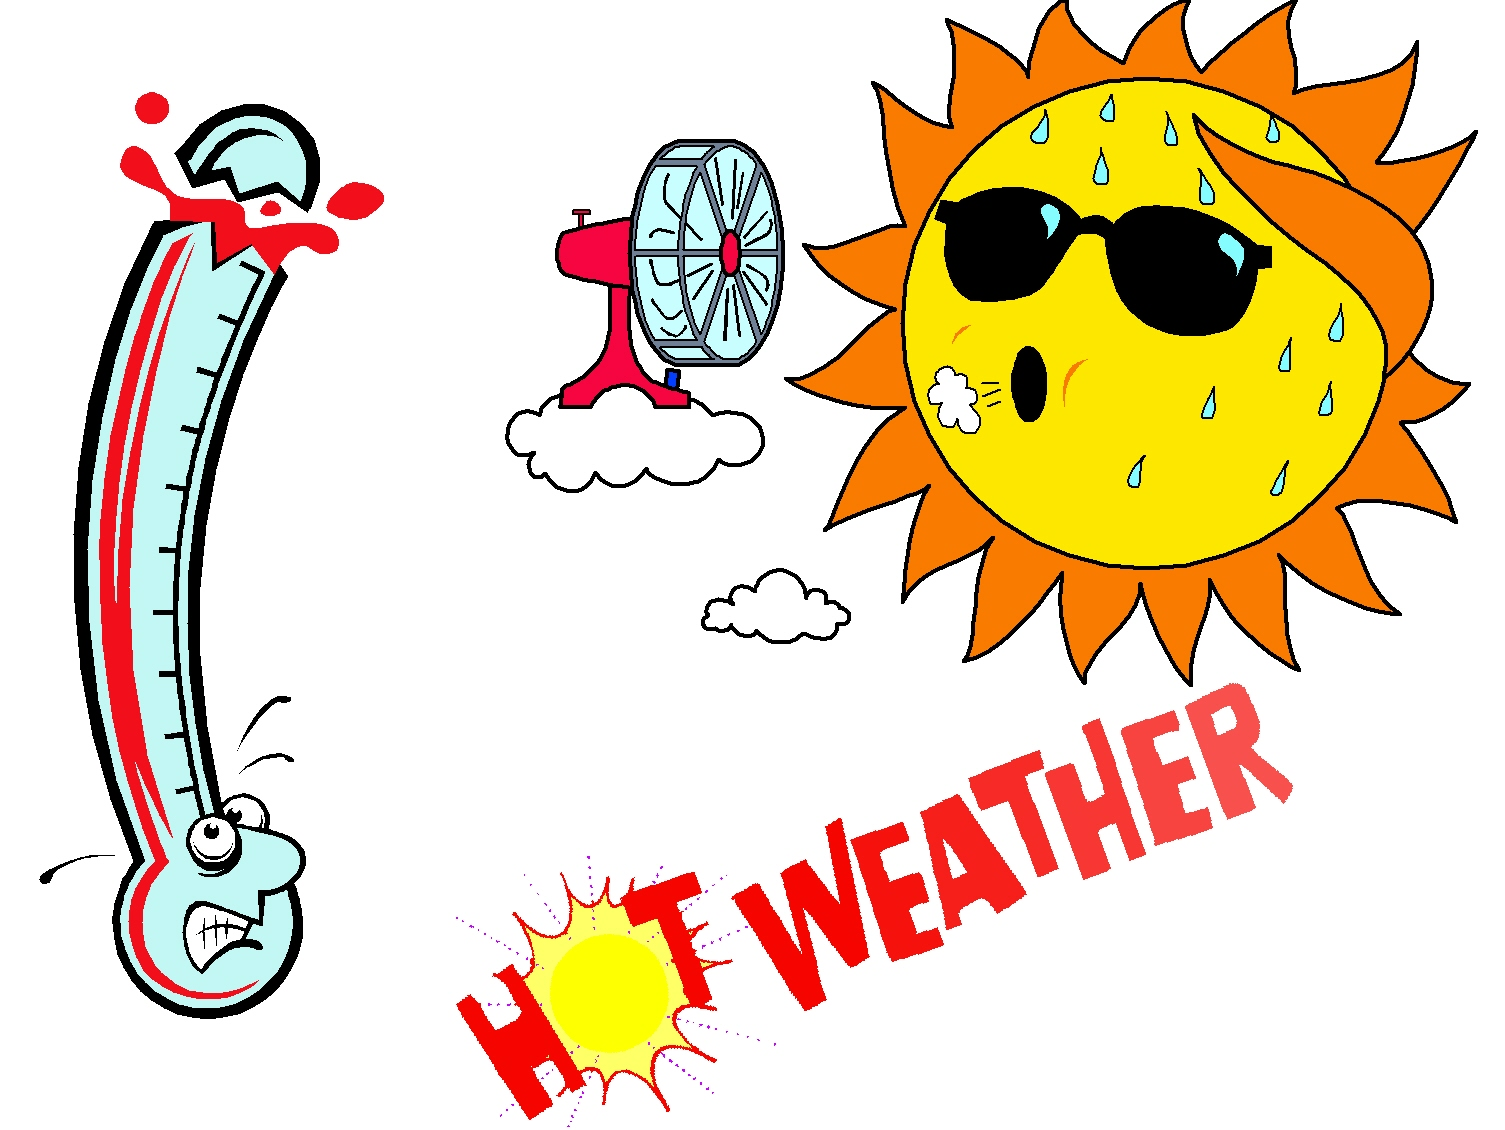 Very hot weather clipart.